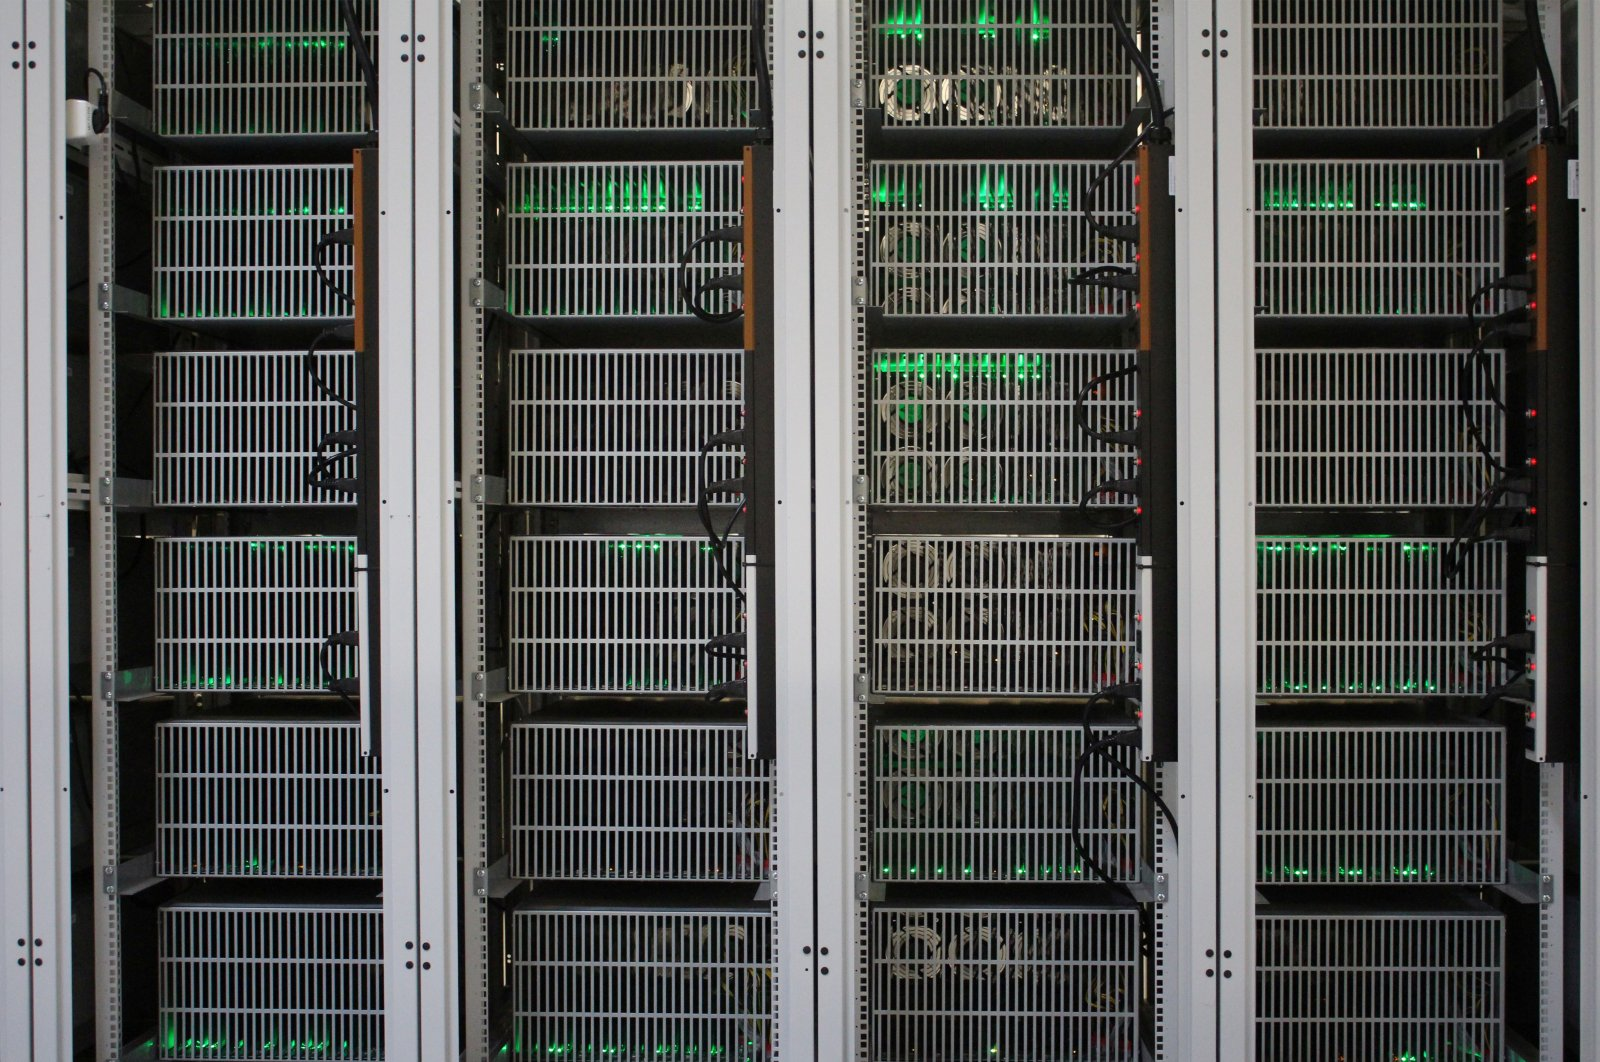 Bitcoin mining computers are pictured in Bitfury's mining farm near Keflavik, Iceland, June 7, 2016. (Reuters Photo)